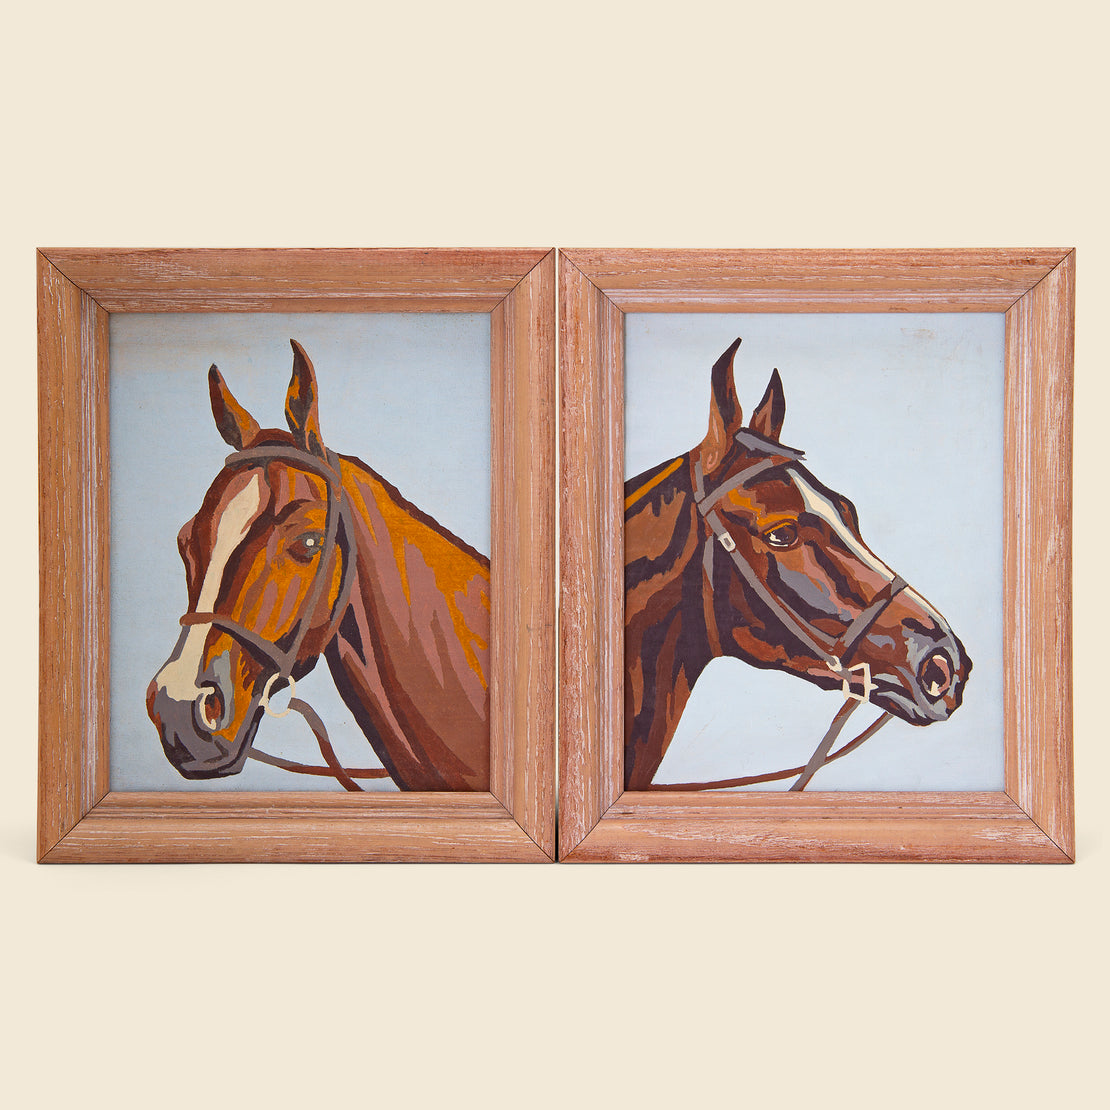 Vintage Pair of Framed Horse Paintings